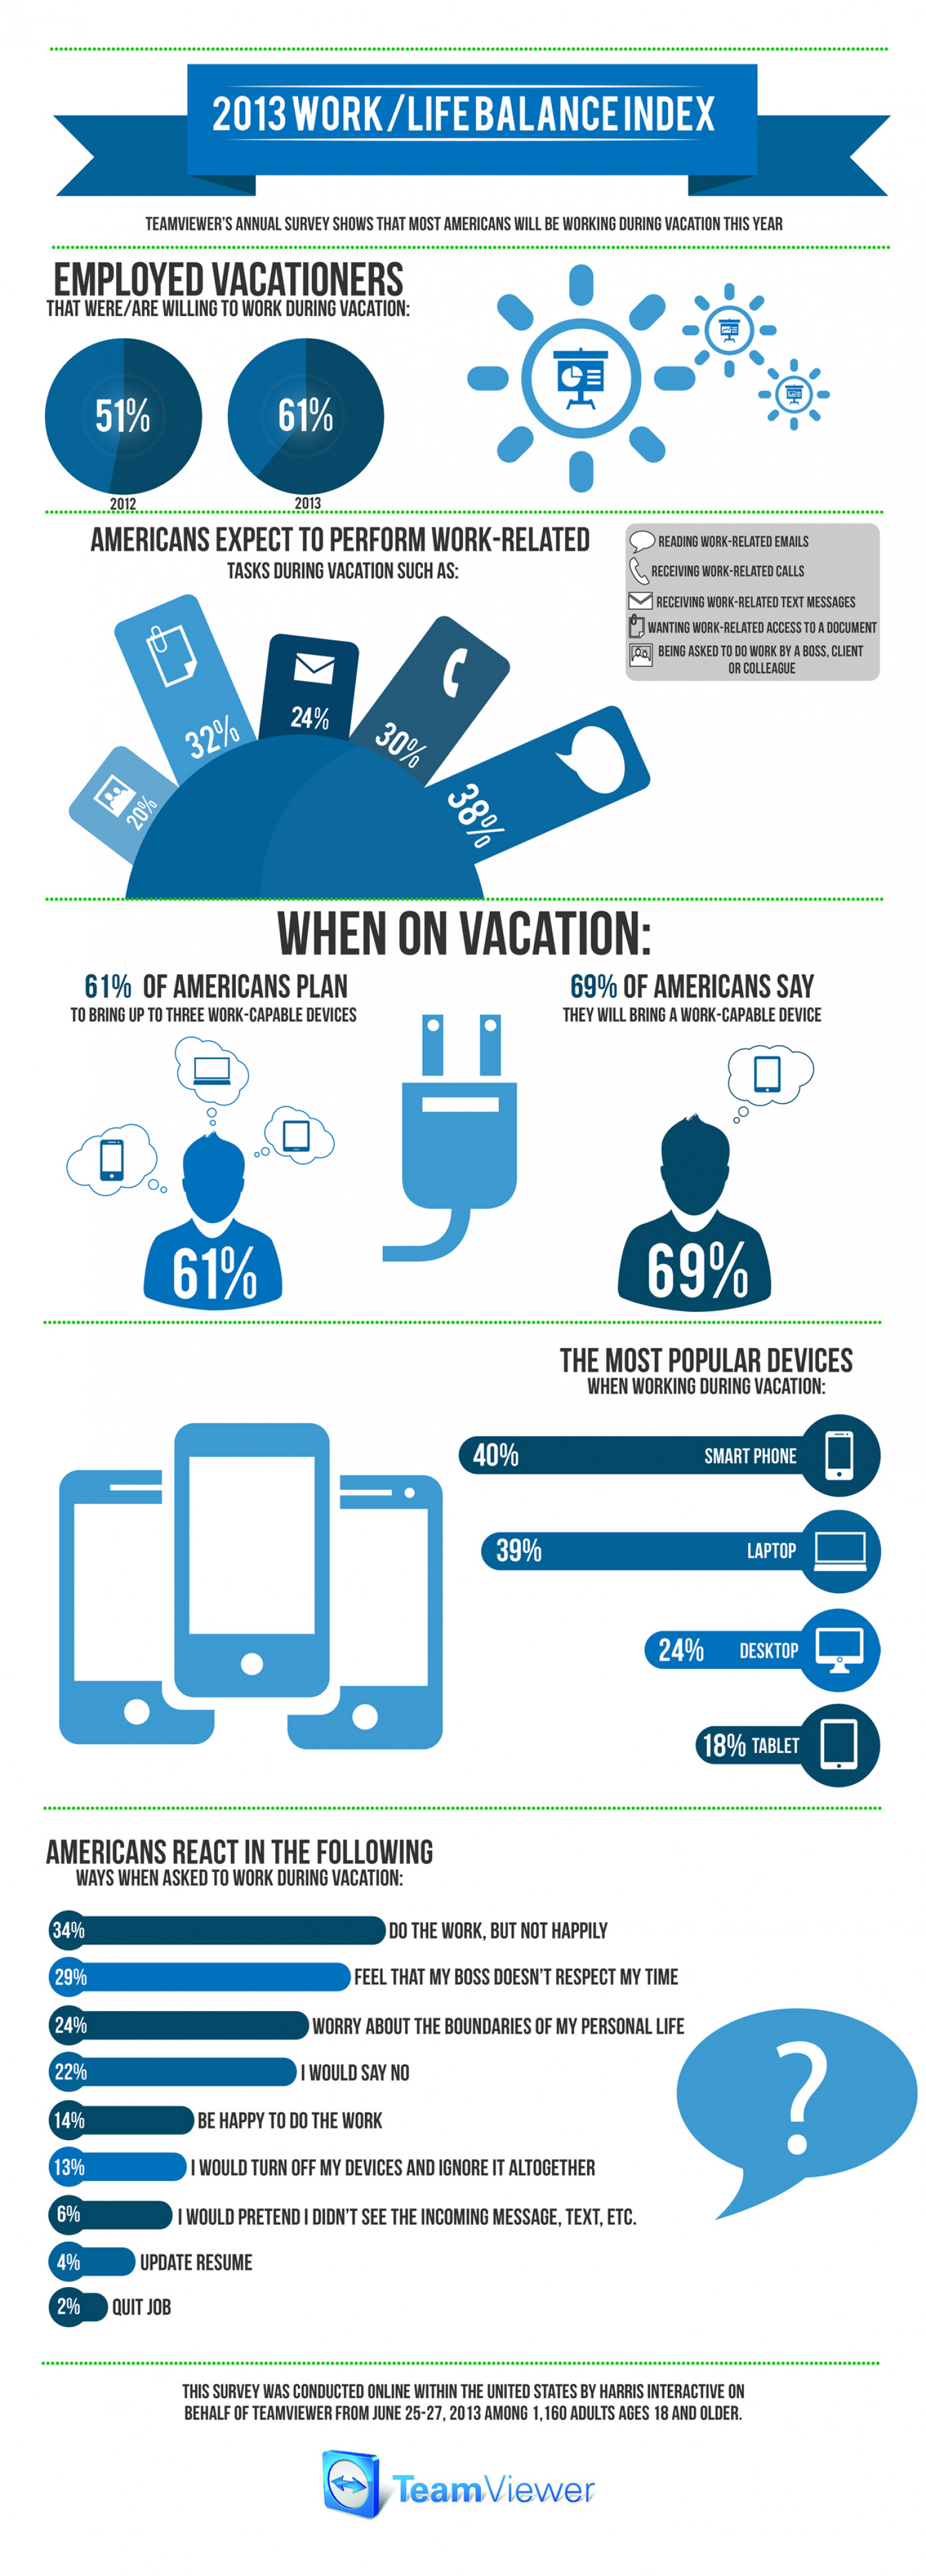 2013 Work/Life Balance of Americans Infographic